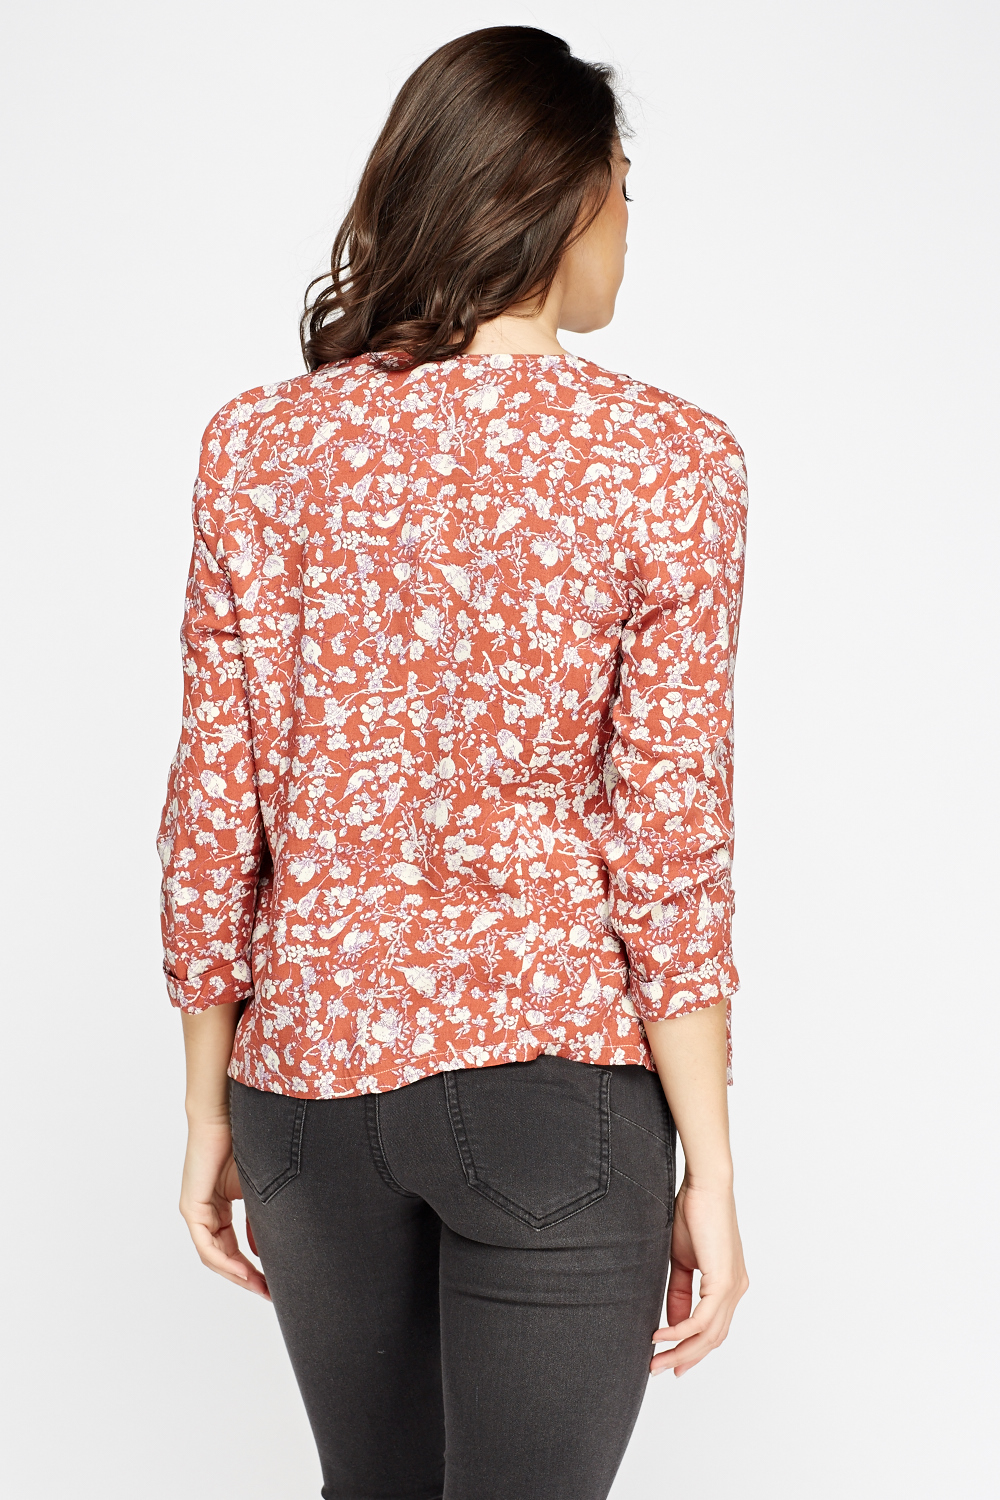 Rust Floral Kimono Top - Rust/Cream - Just £5